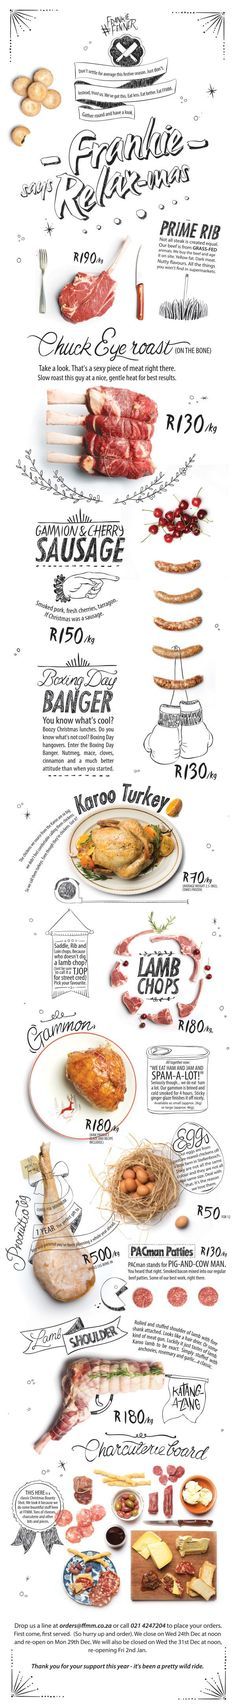 Food infographic  Frankie Fenner Meat Merchants infographic #infographic #layout #typography